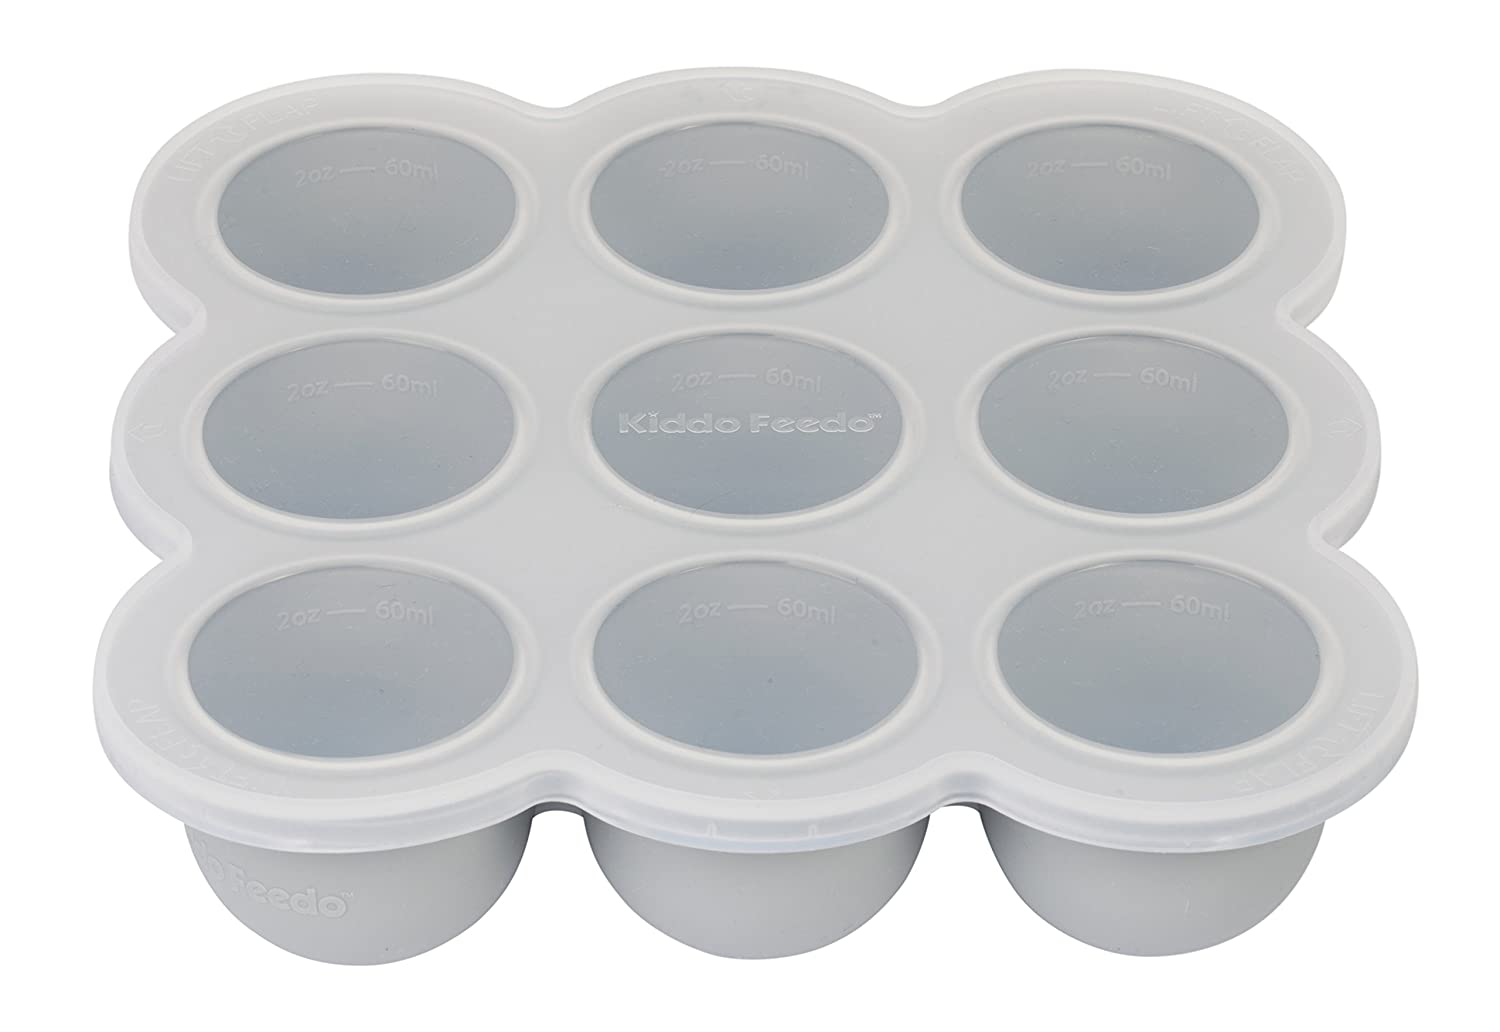 Muffins and Frittatas Herbs and Ice Cubes KIDDO FEEDO Multipurpose Tray for Freezing Baby Food Gray Also a Baking Mold for Egg Bites FREE eBook by Author//Dietitian